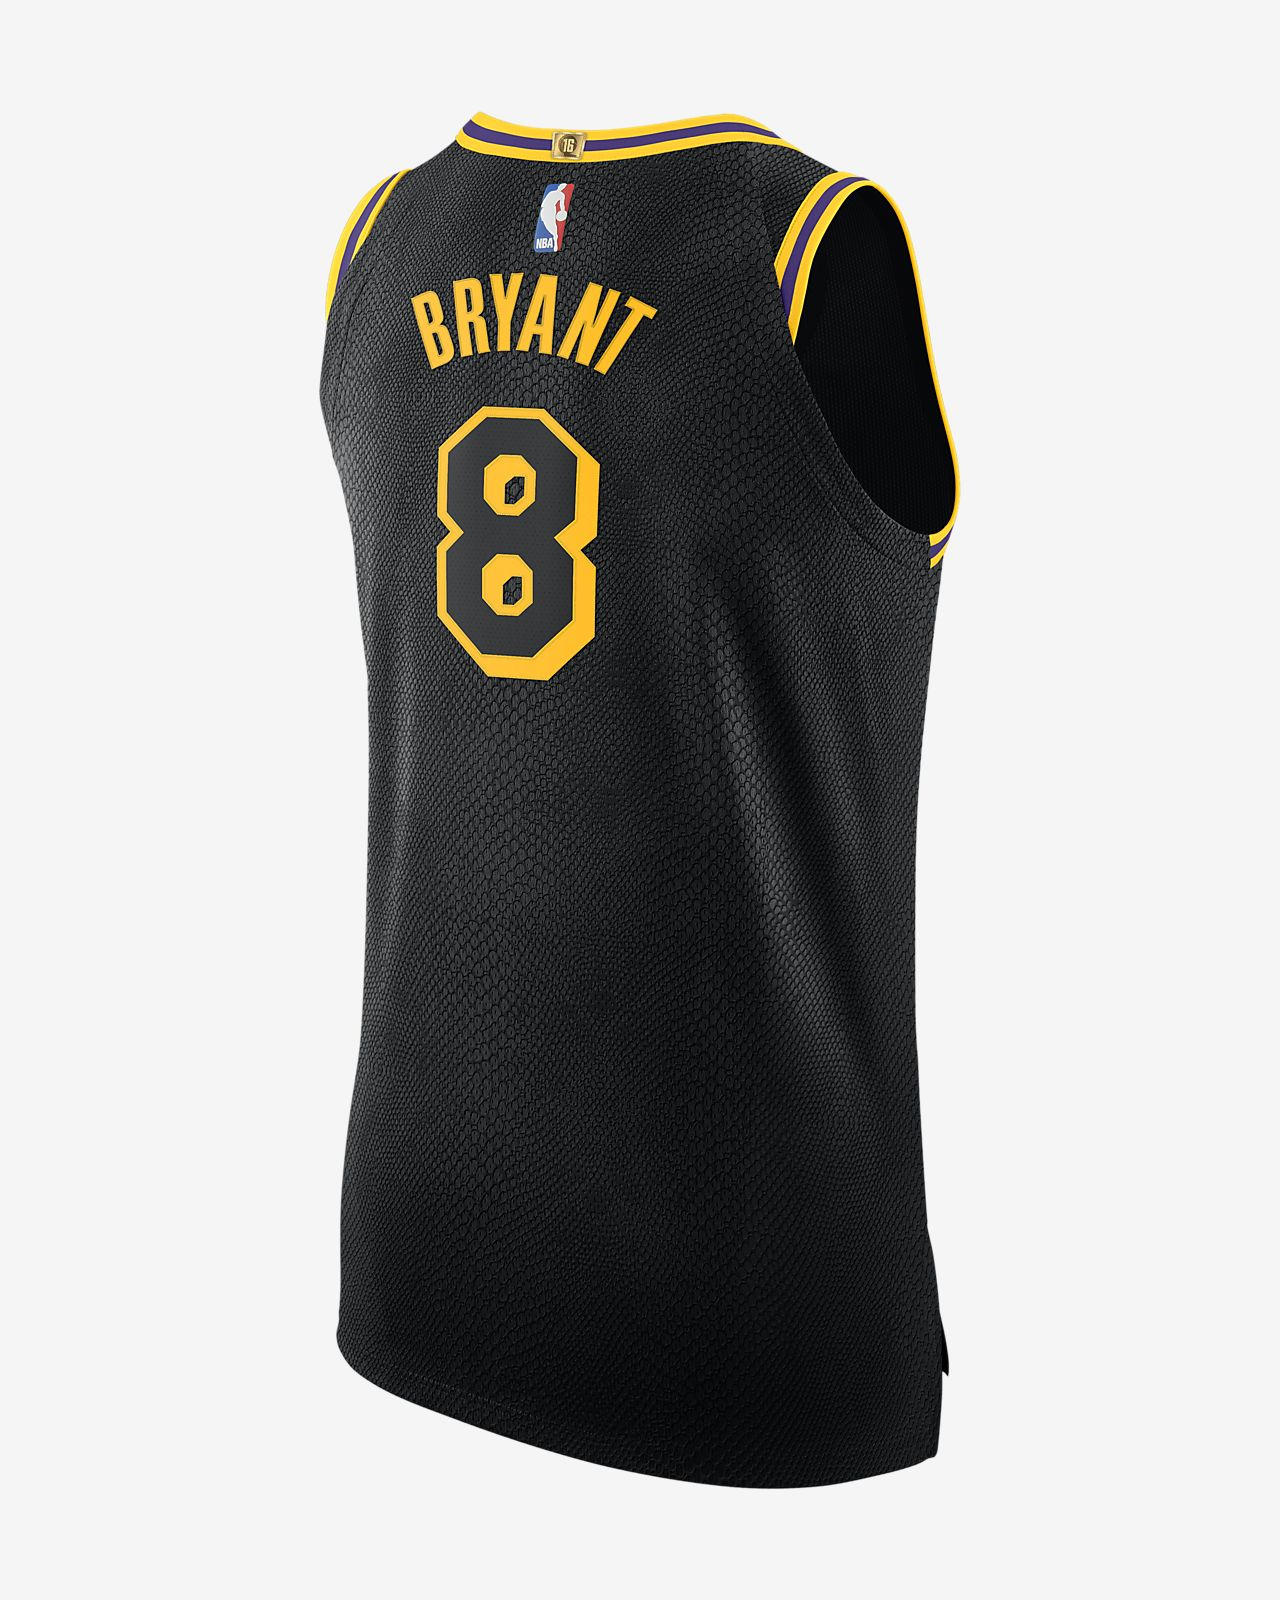 740a3eca5 ... Kobe Bryant City Edition Authentic (Los Angeles Lakers) Camiseta Nike  NBA Connected - Hombre